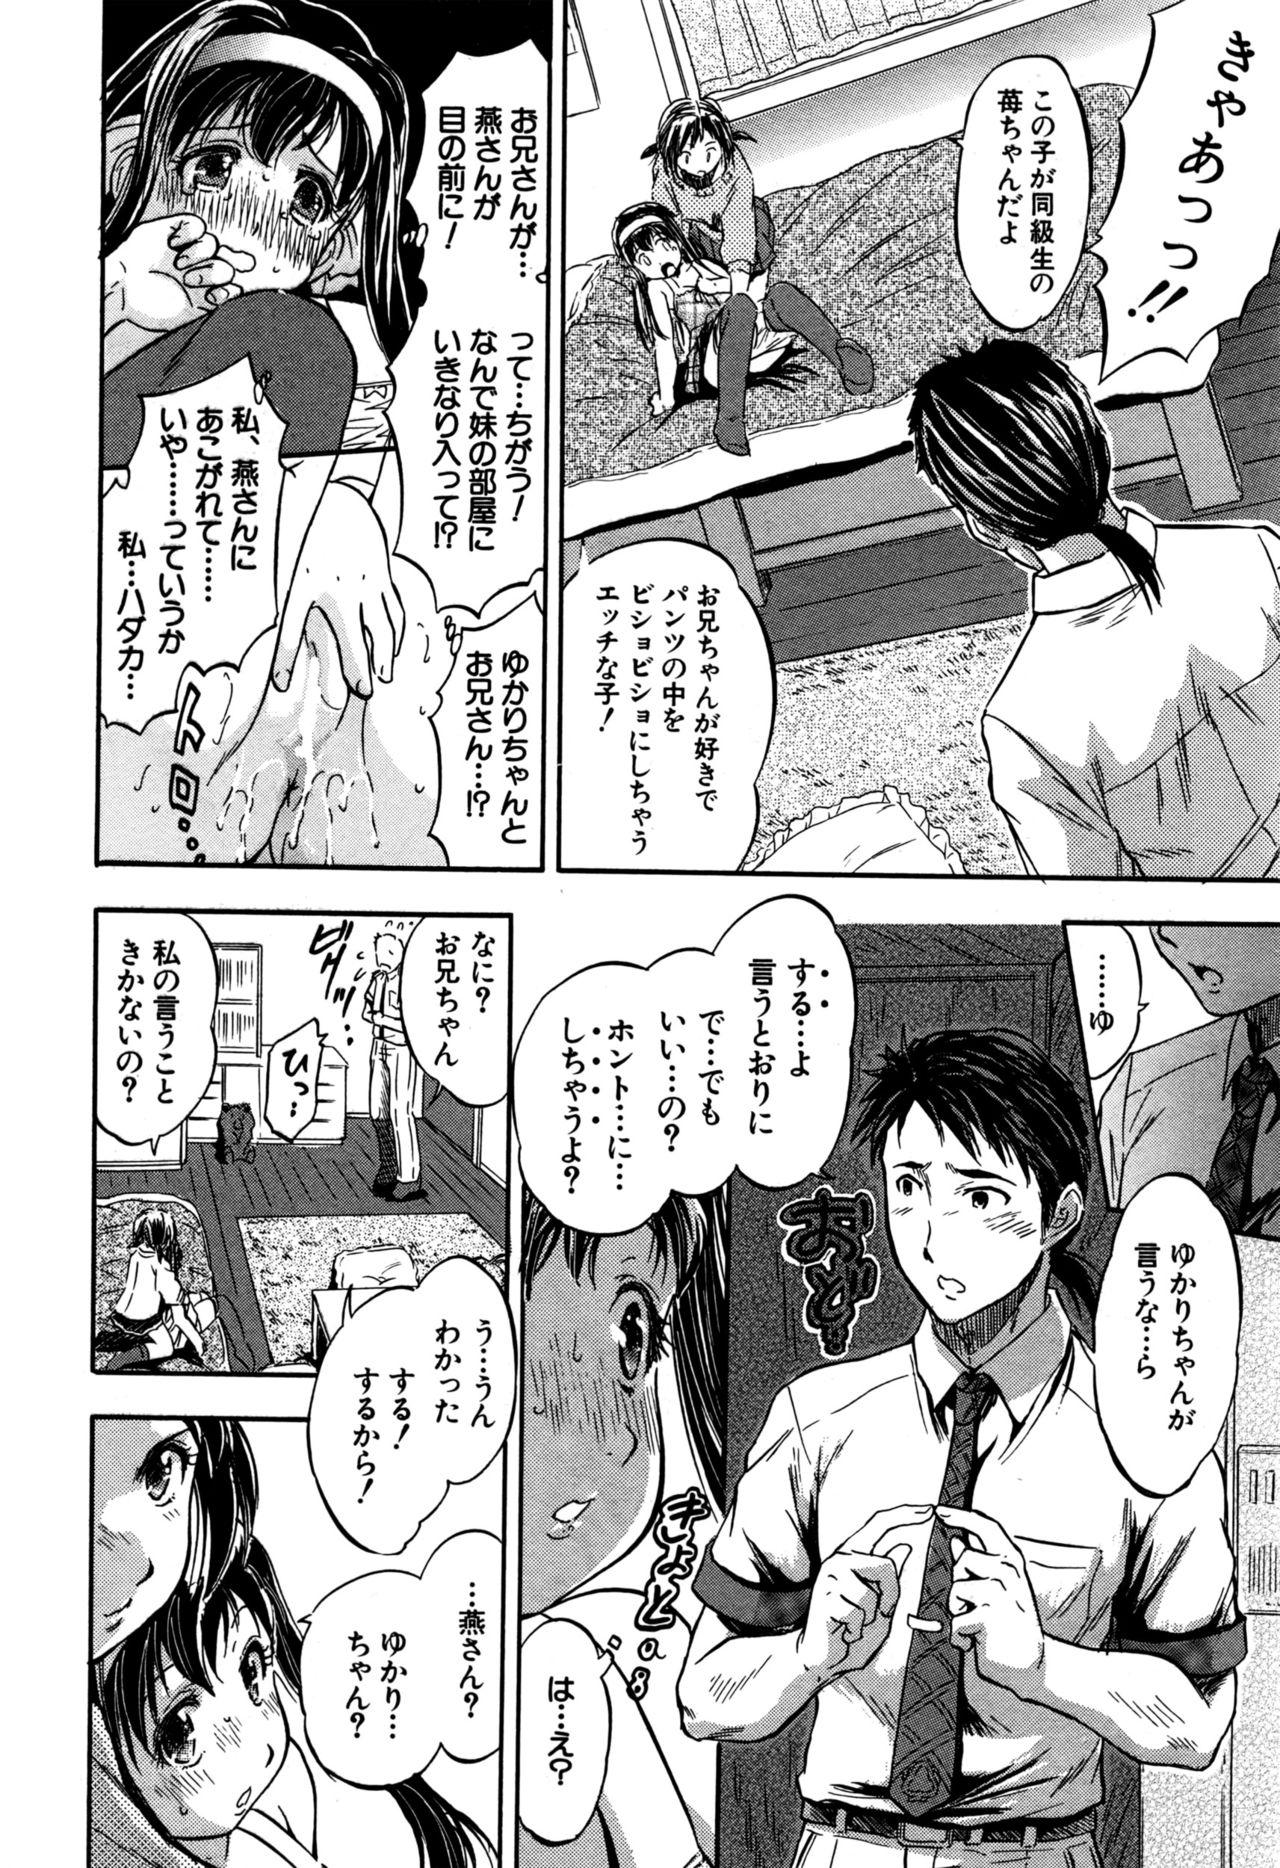 BUSTER COMIC 2016-09 270